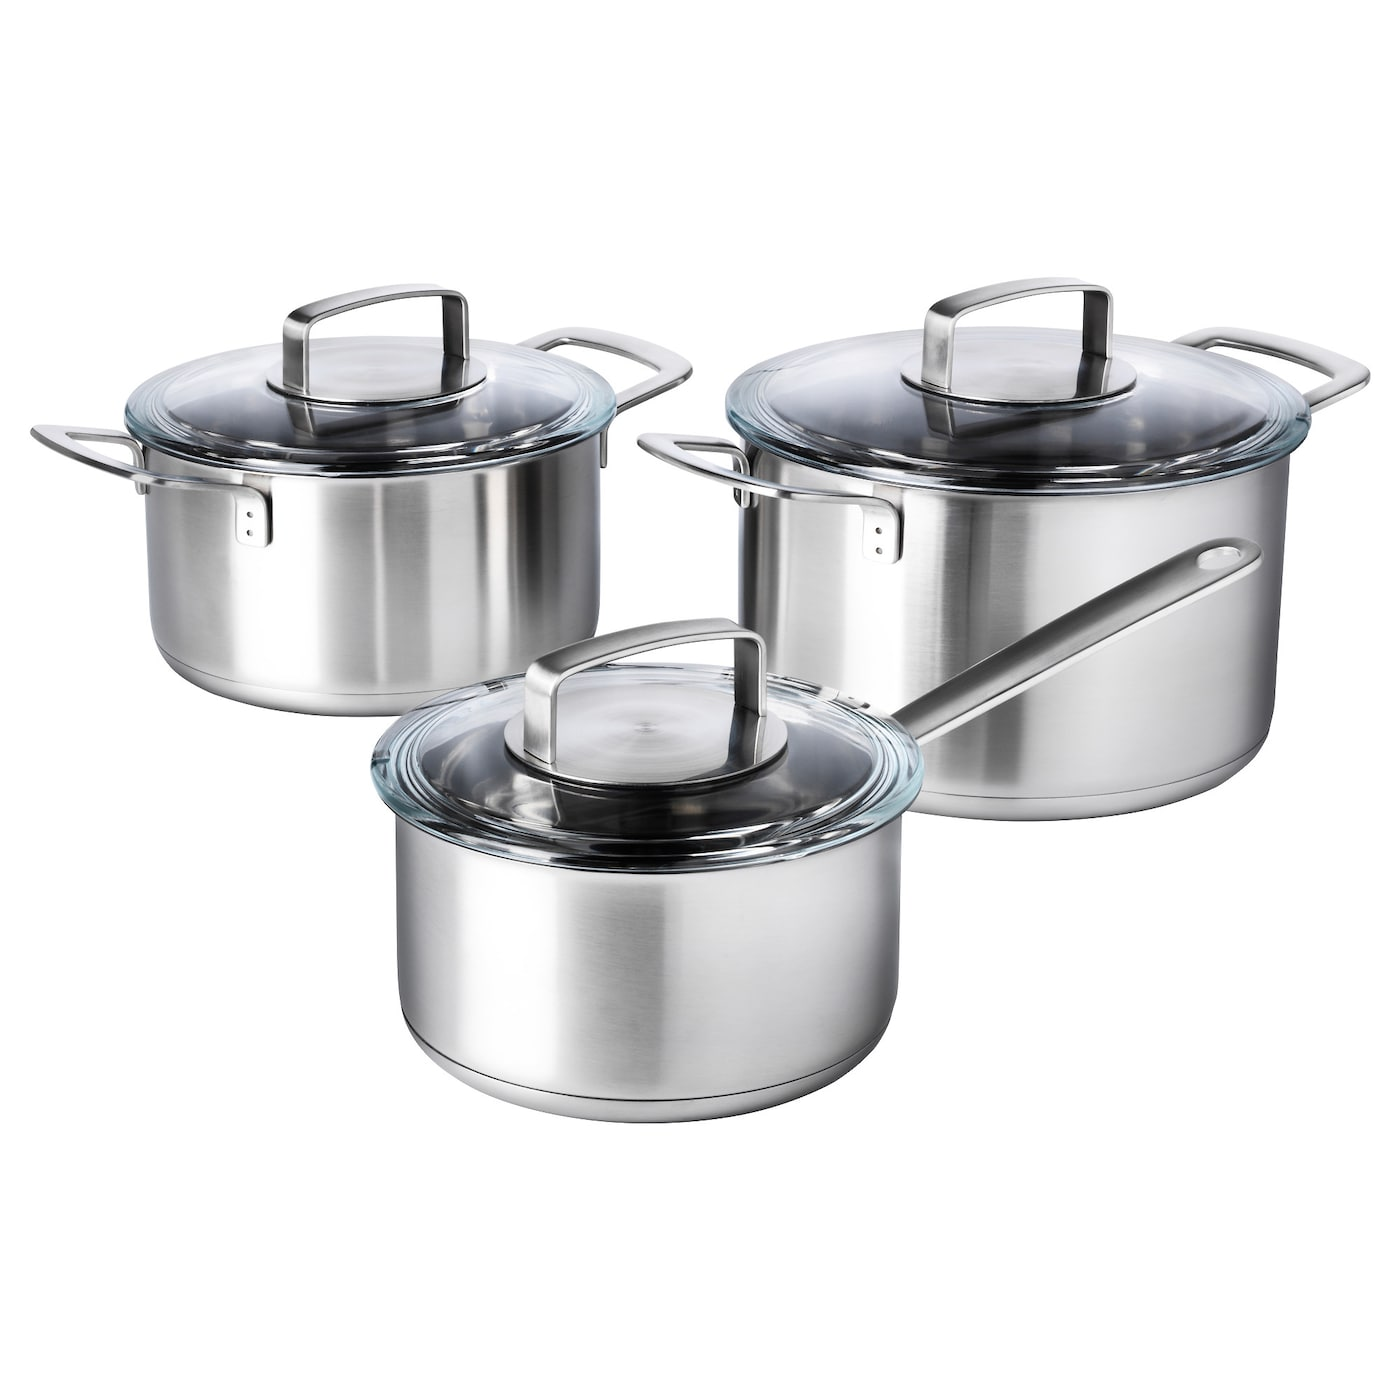 Ikea 365 6 piece cookware set stainless steel glass ikea for Art and cuisine cookware